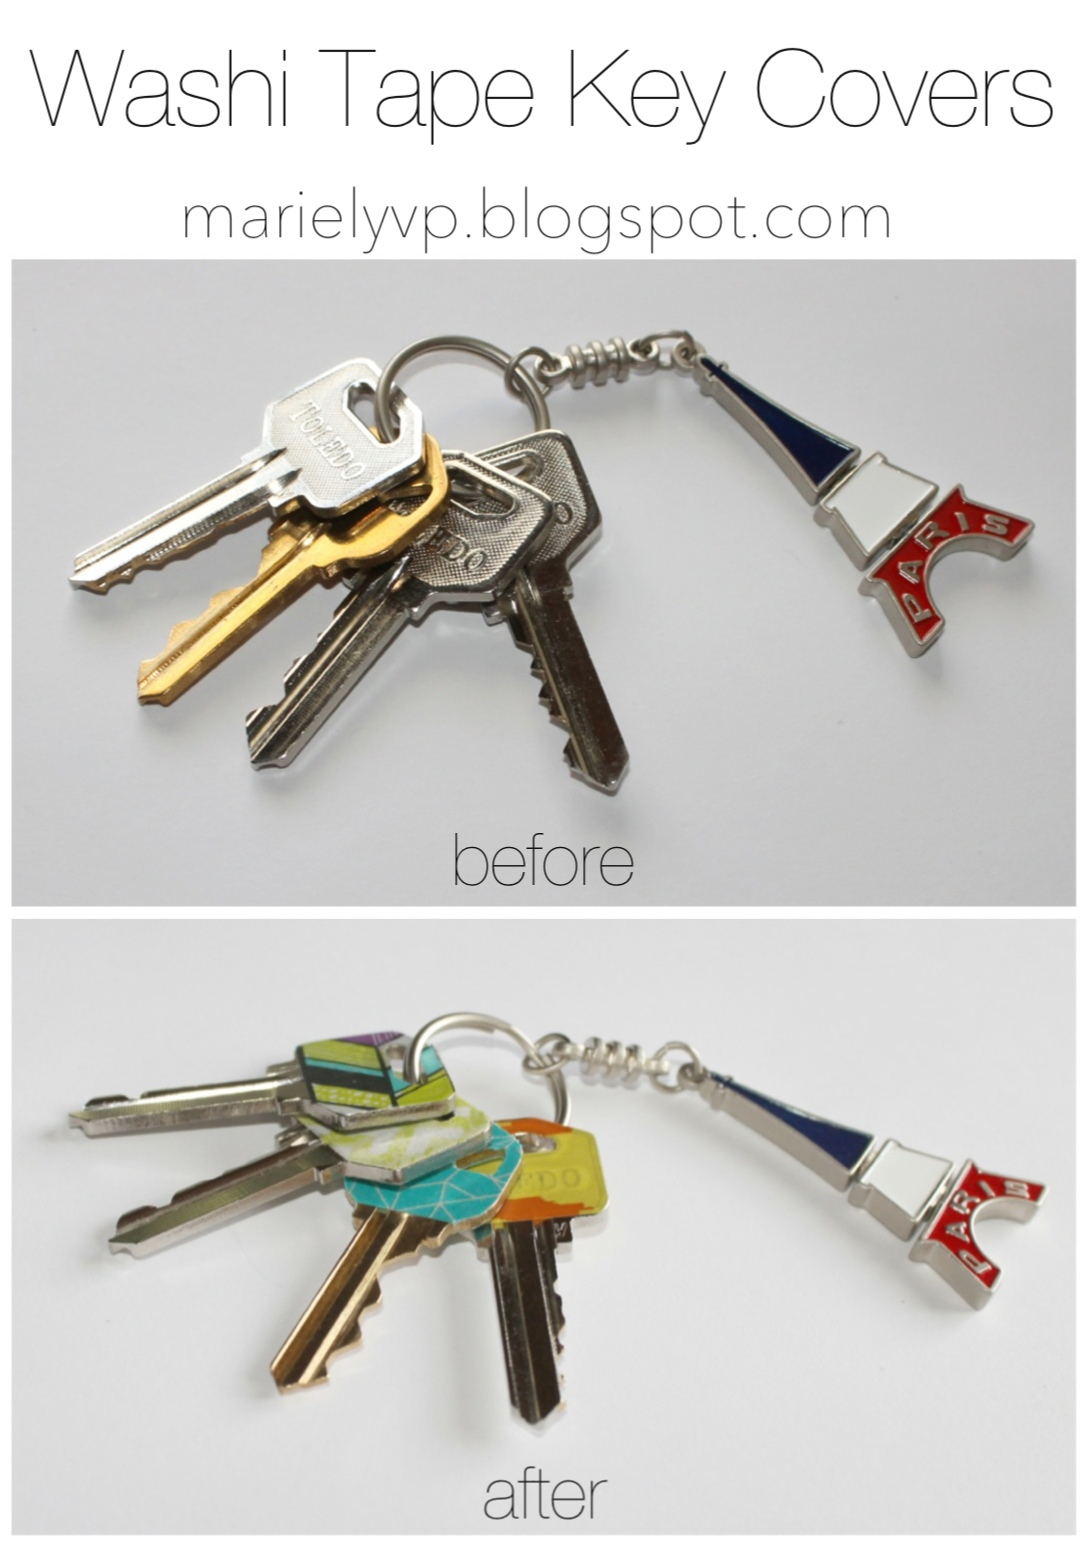 Washi Tape Key Covers Before and After | Washi Tape Ideas | Creative Ways To Use Washi Tape